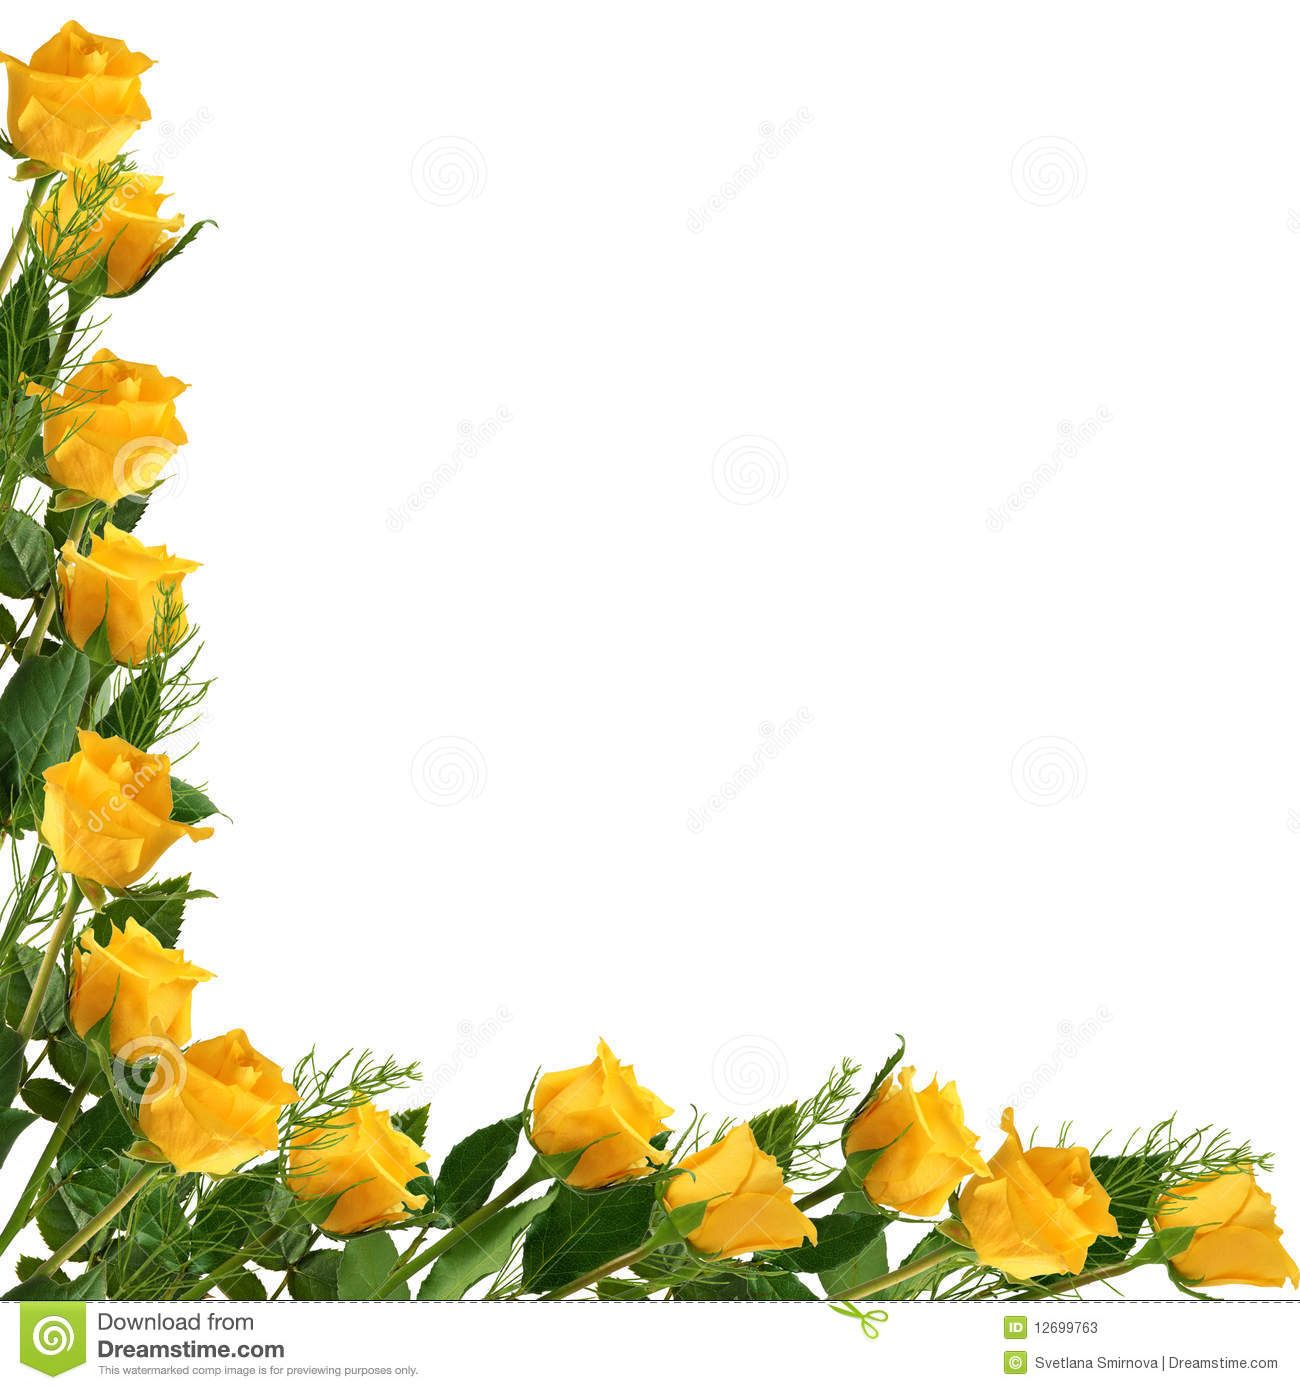 36+ Free yellow rose clipart info